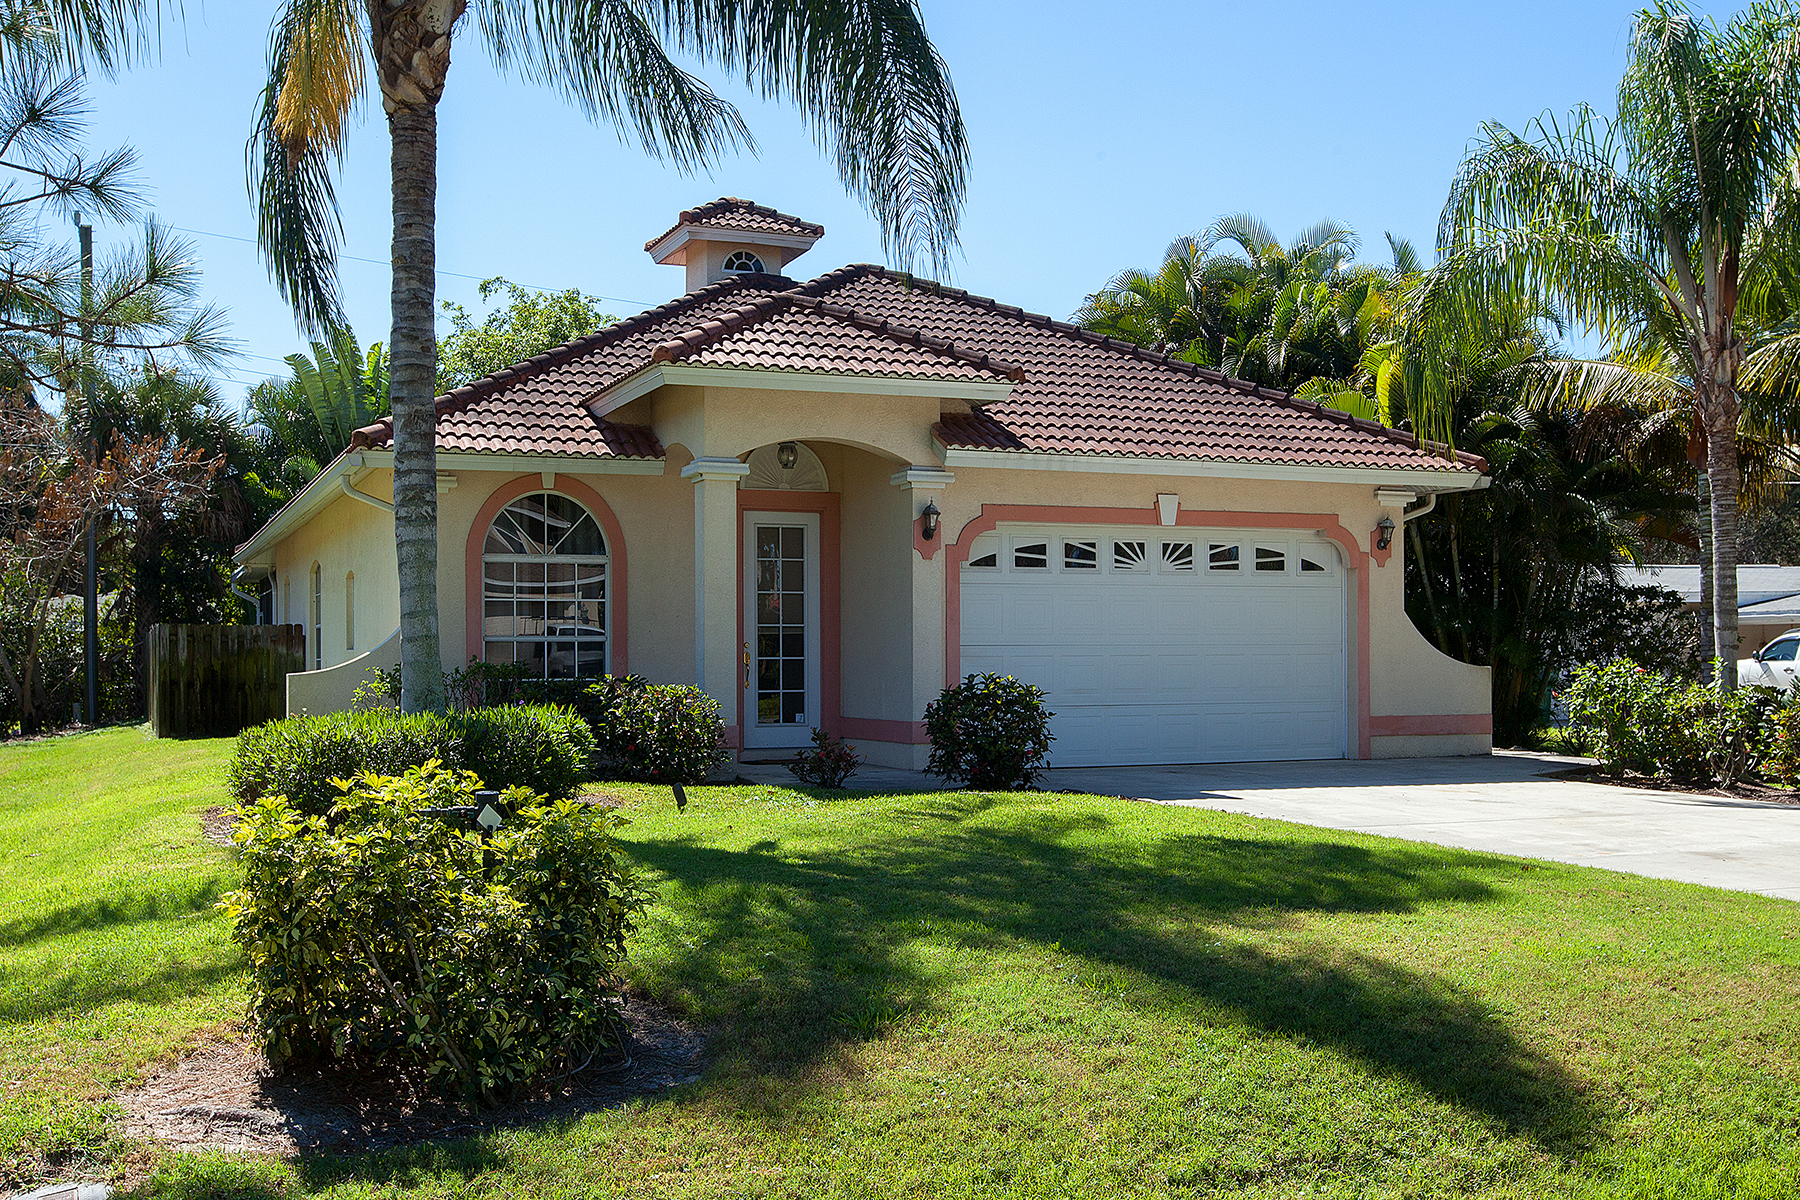 Single Family Home for Sale at BAD AXE 1024 Michigan Ave Naples, Florida, 34103 United States